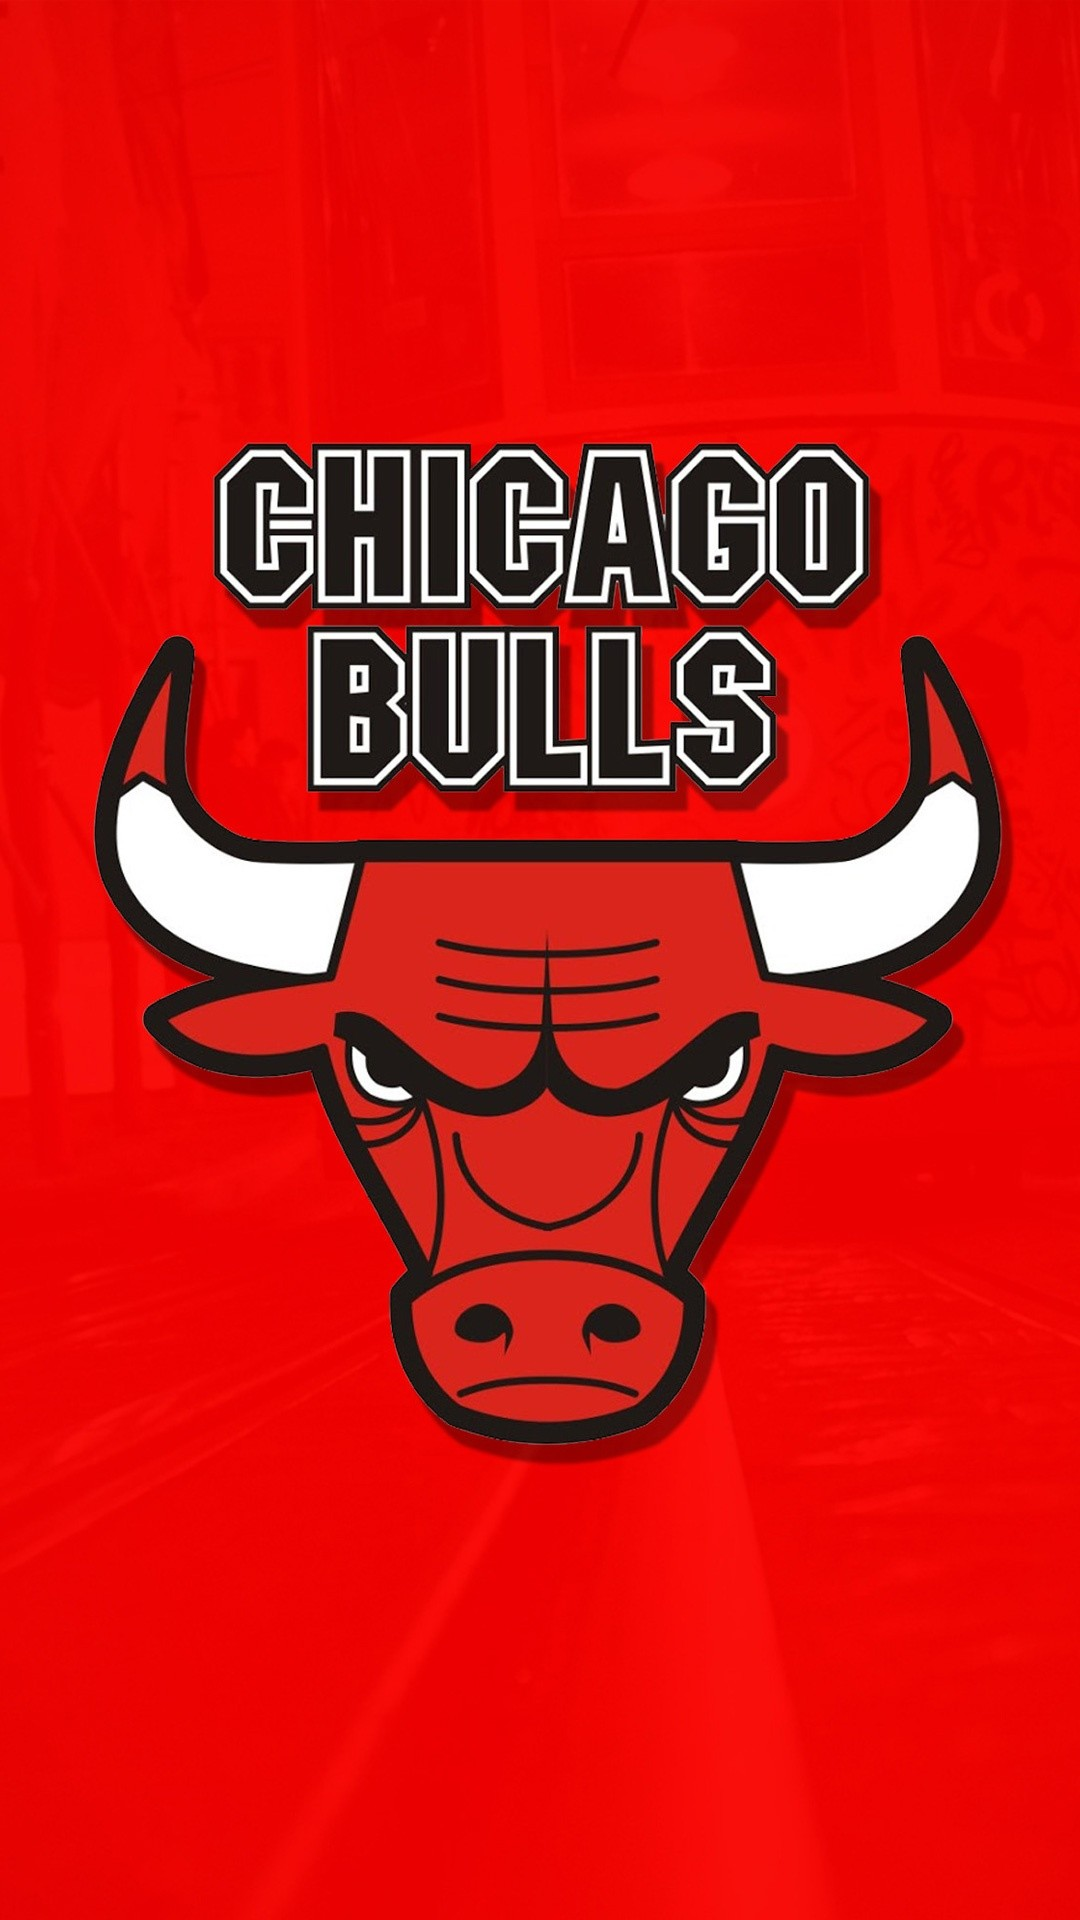 Free The Chicago Bulls phone wallpaper by chevygurl8874